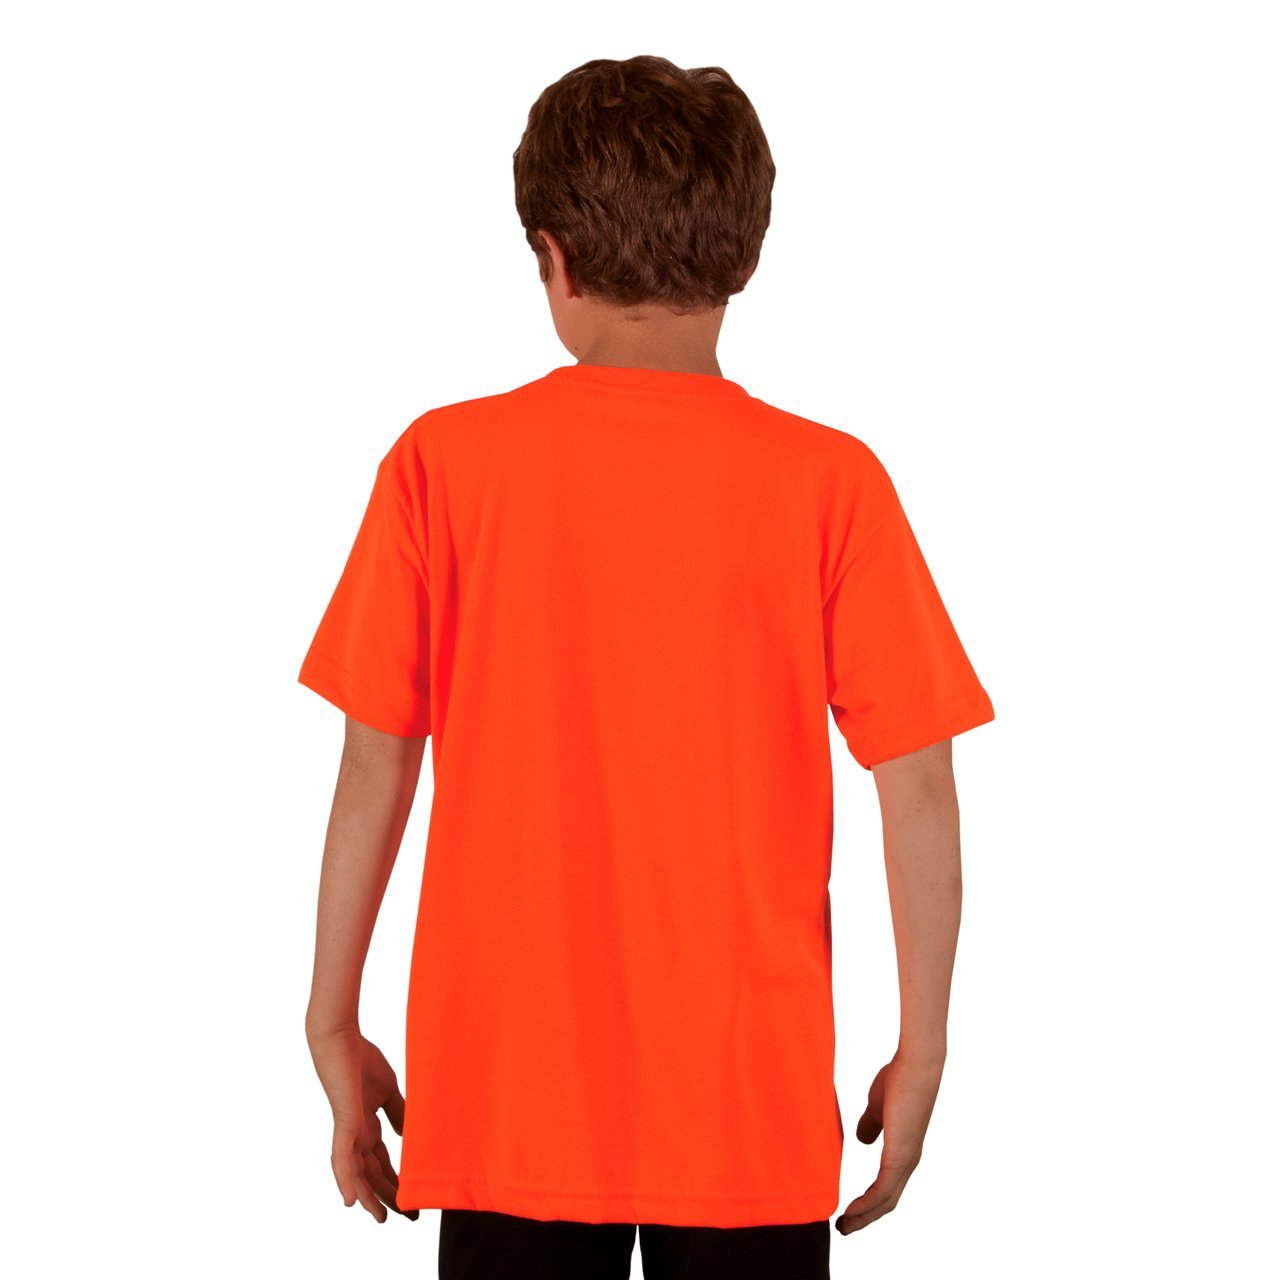 A3SJBBSO Youth Basic Performance T-Shirt - Safety Orange